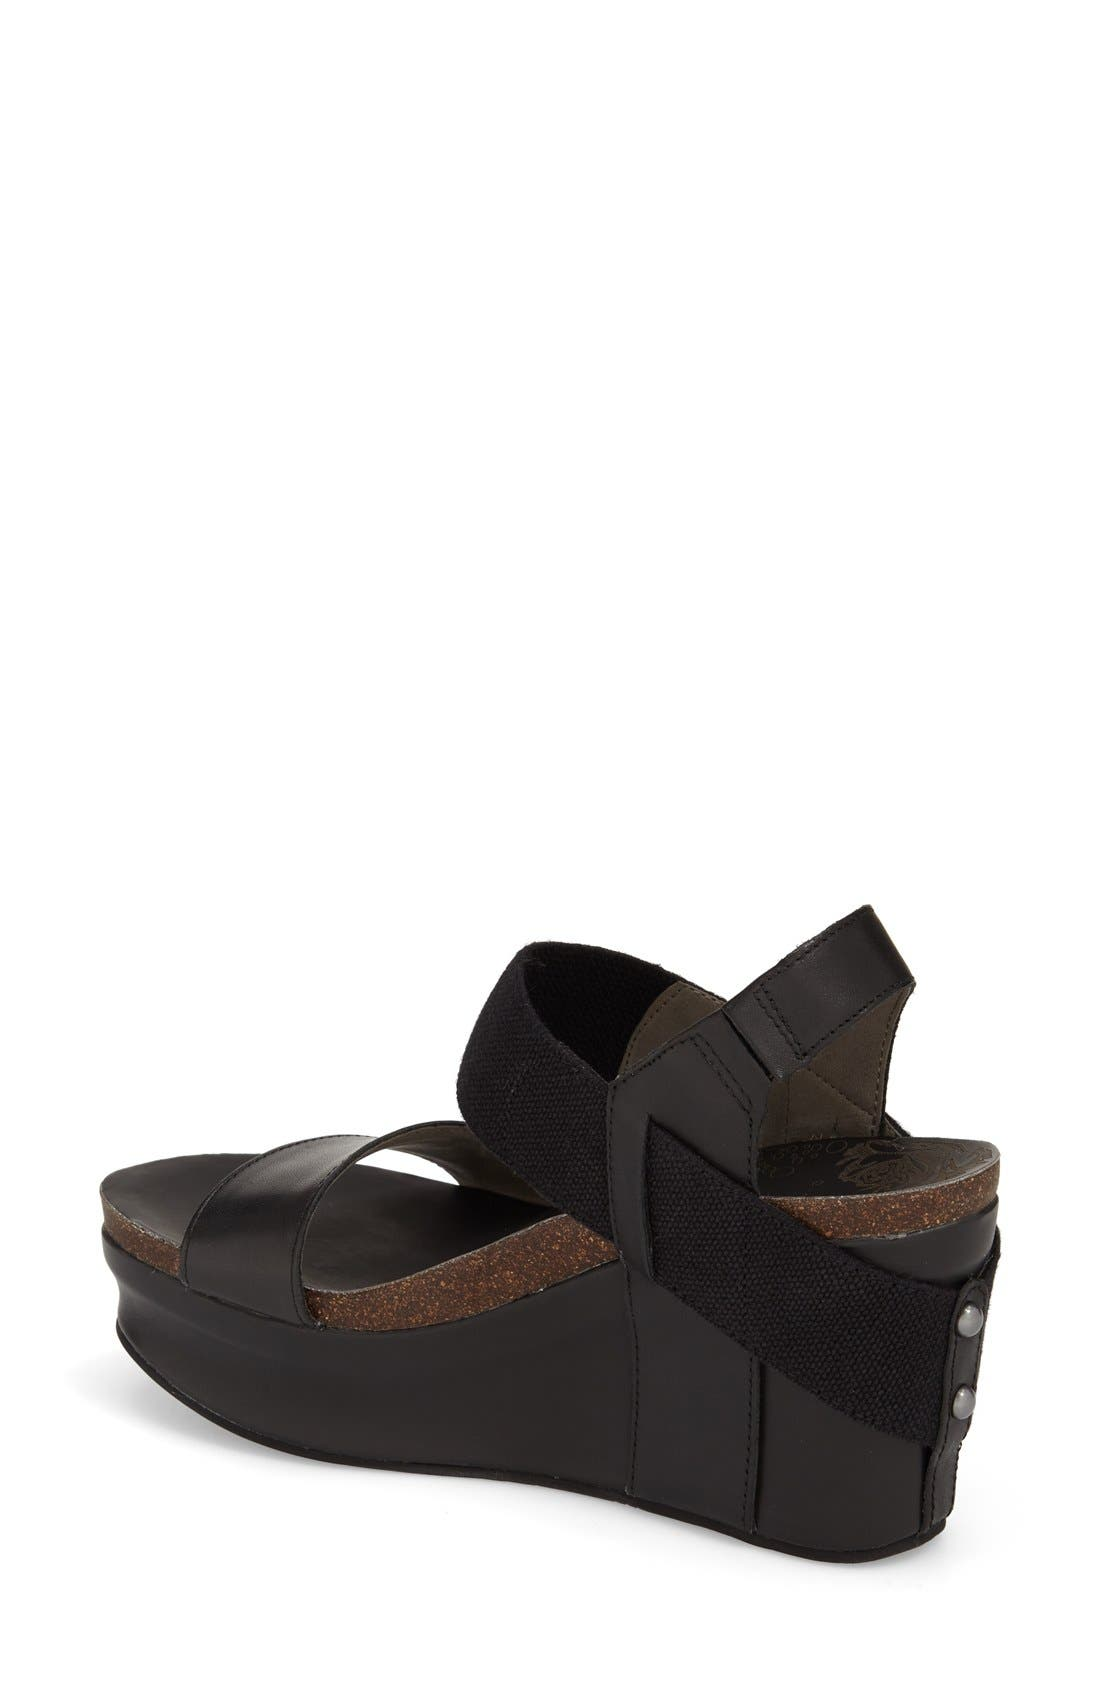 'Bushnell' Wedge Sandal,                             Alternate thumbnail 16, color,